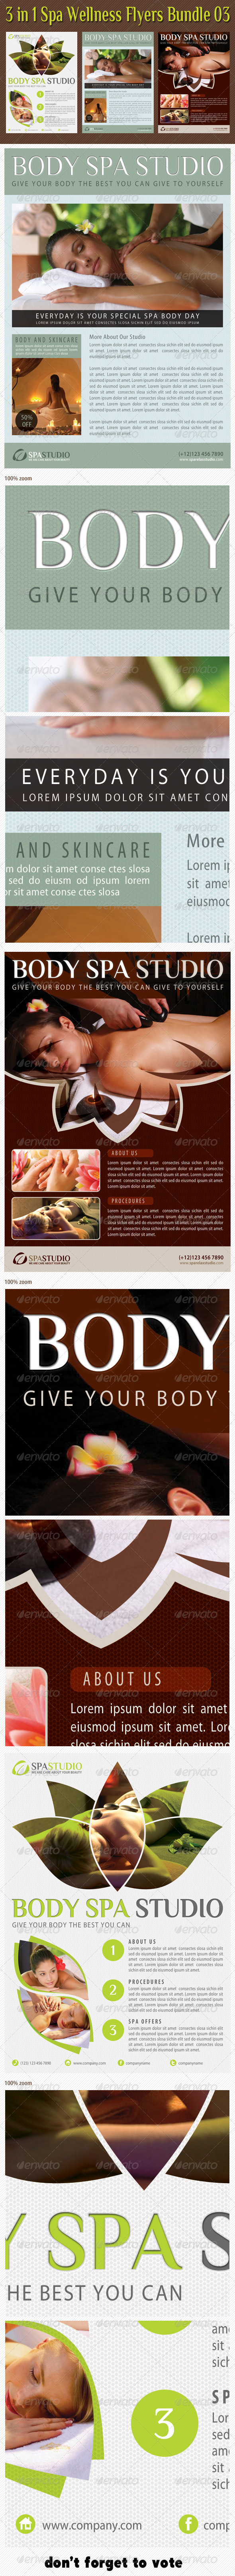 3 in 1 Spa Wellness Flyers Bundle 04 - Flyers Print Templates